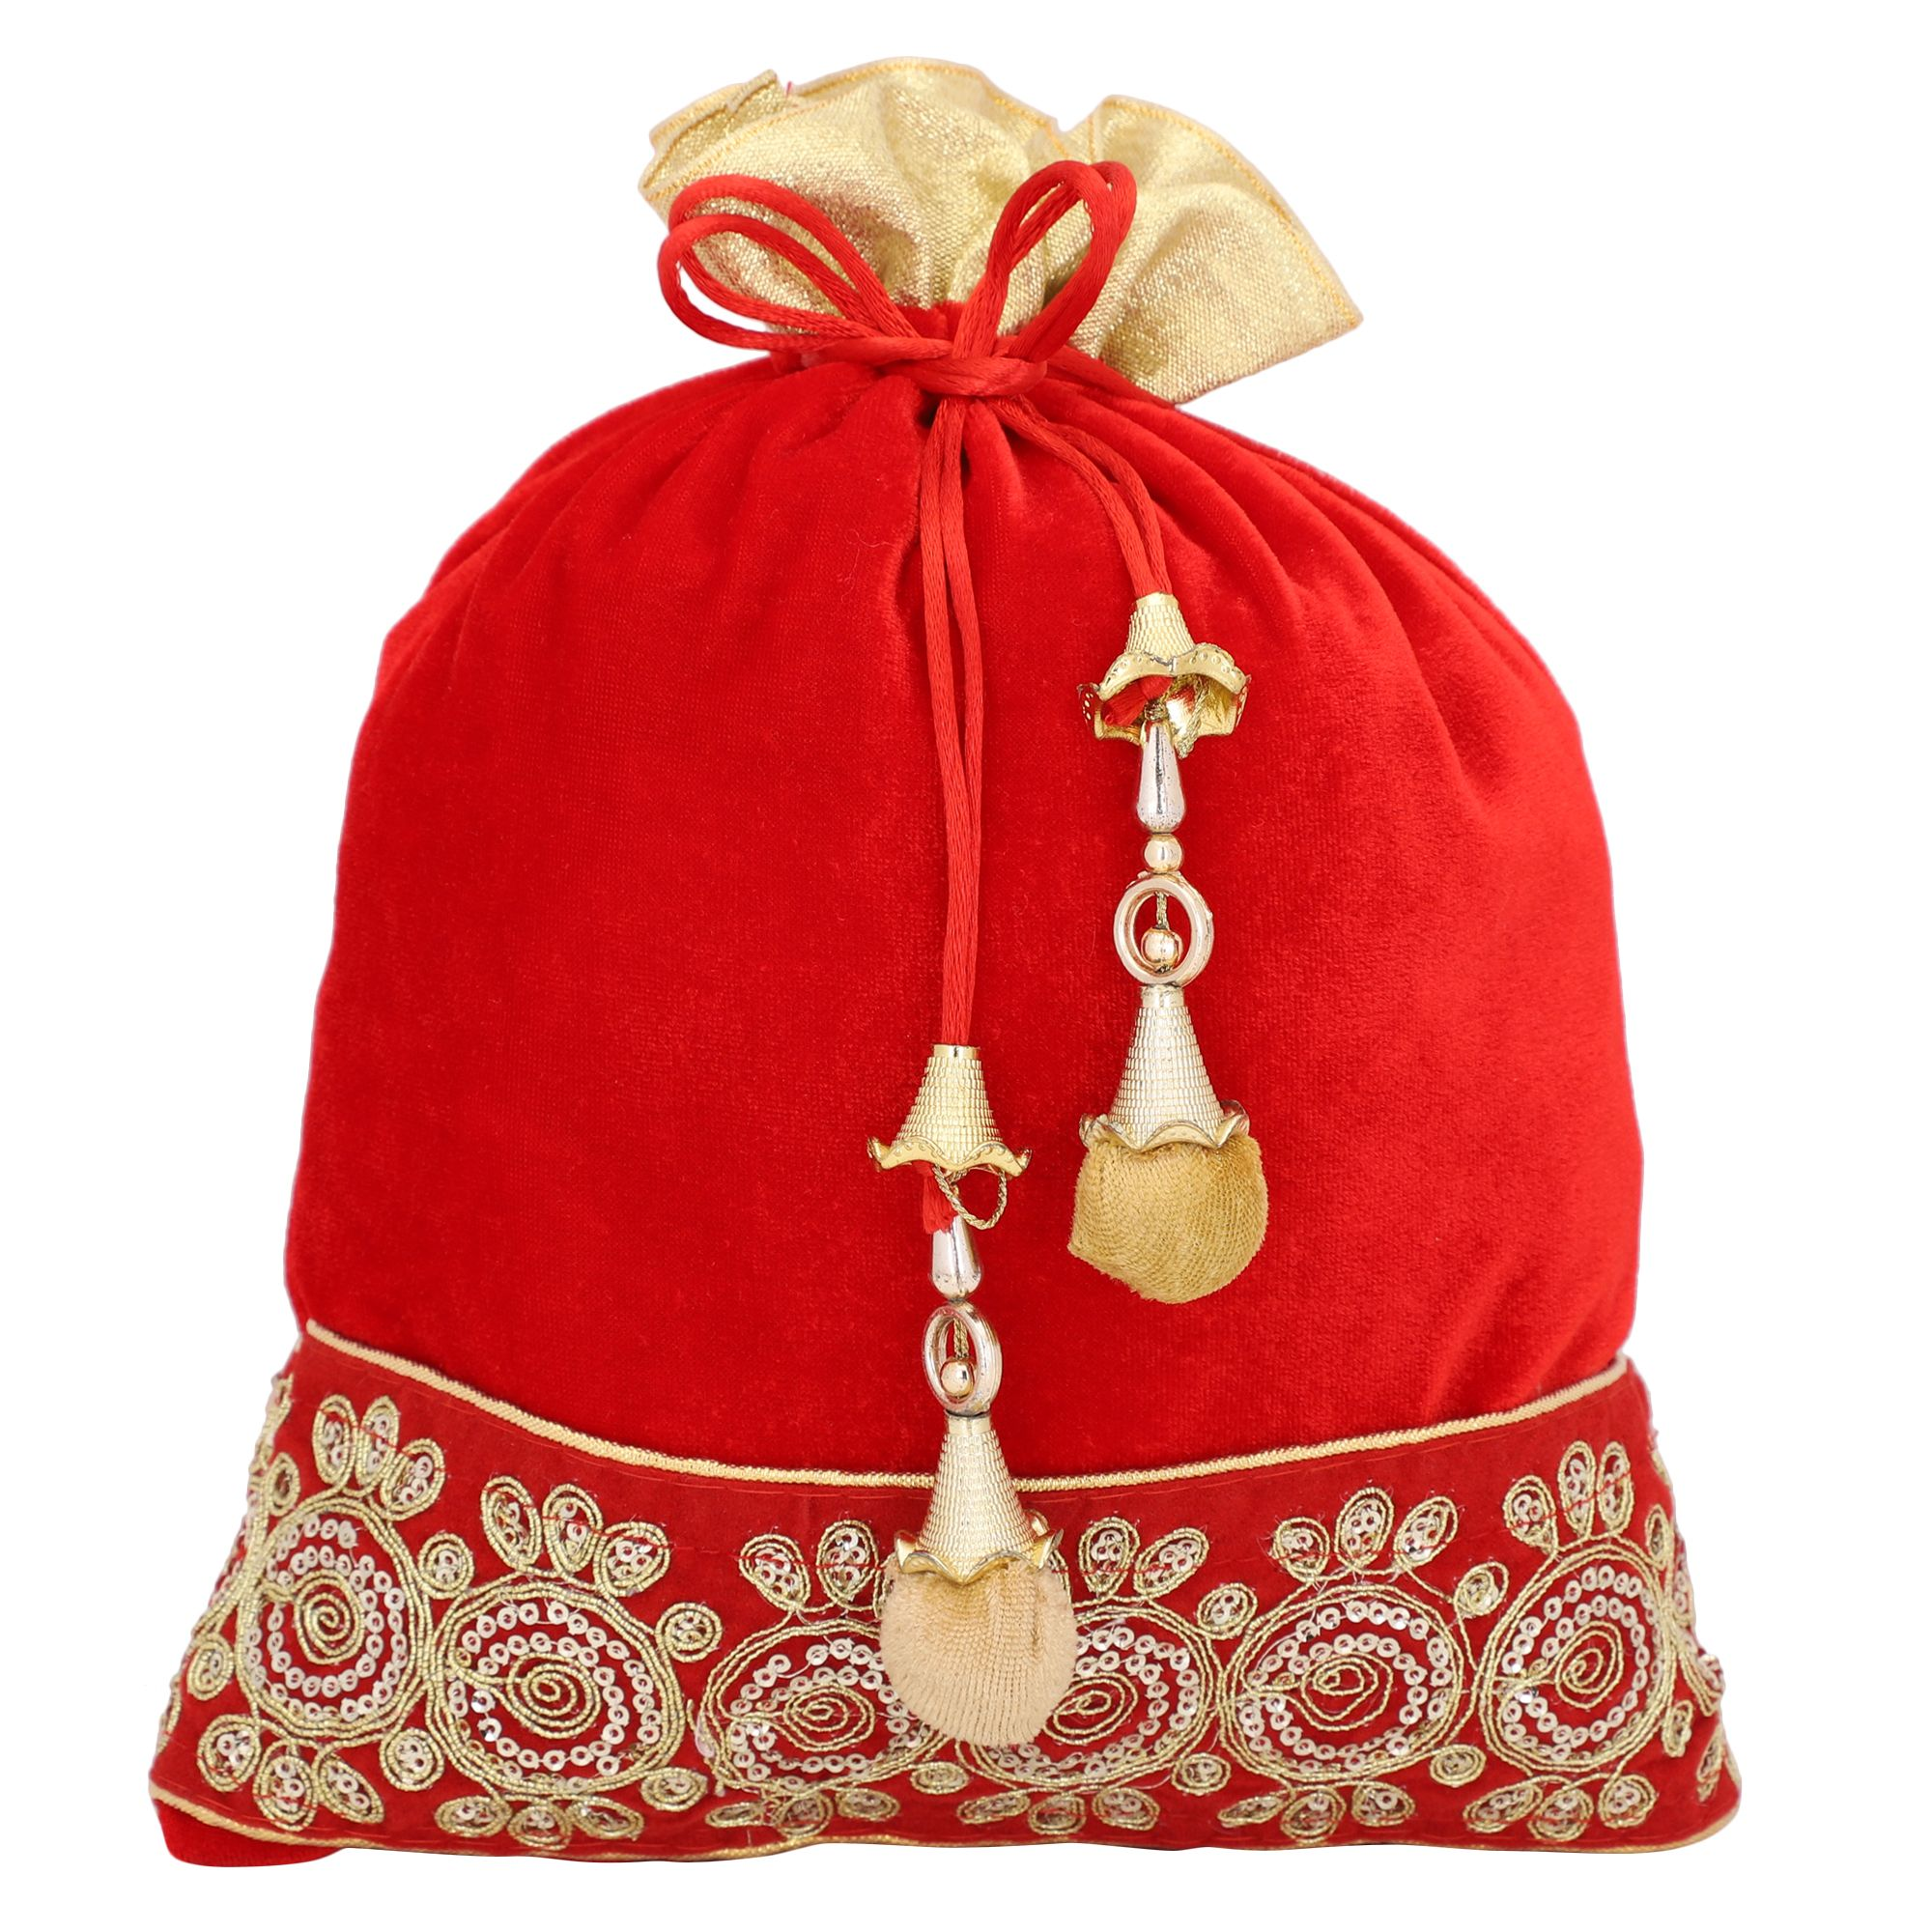 Red Velvet Potli Bag With Golden Tassel